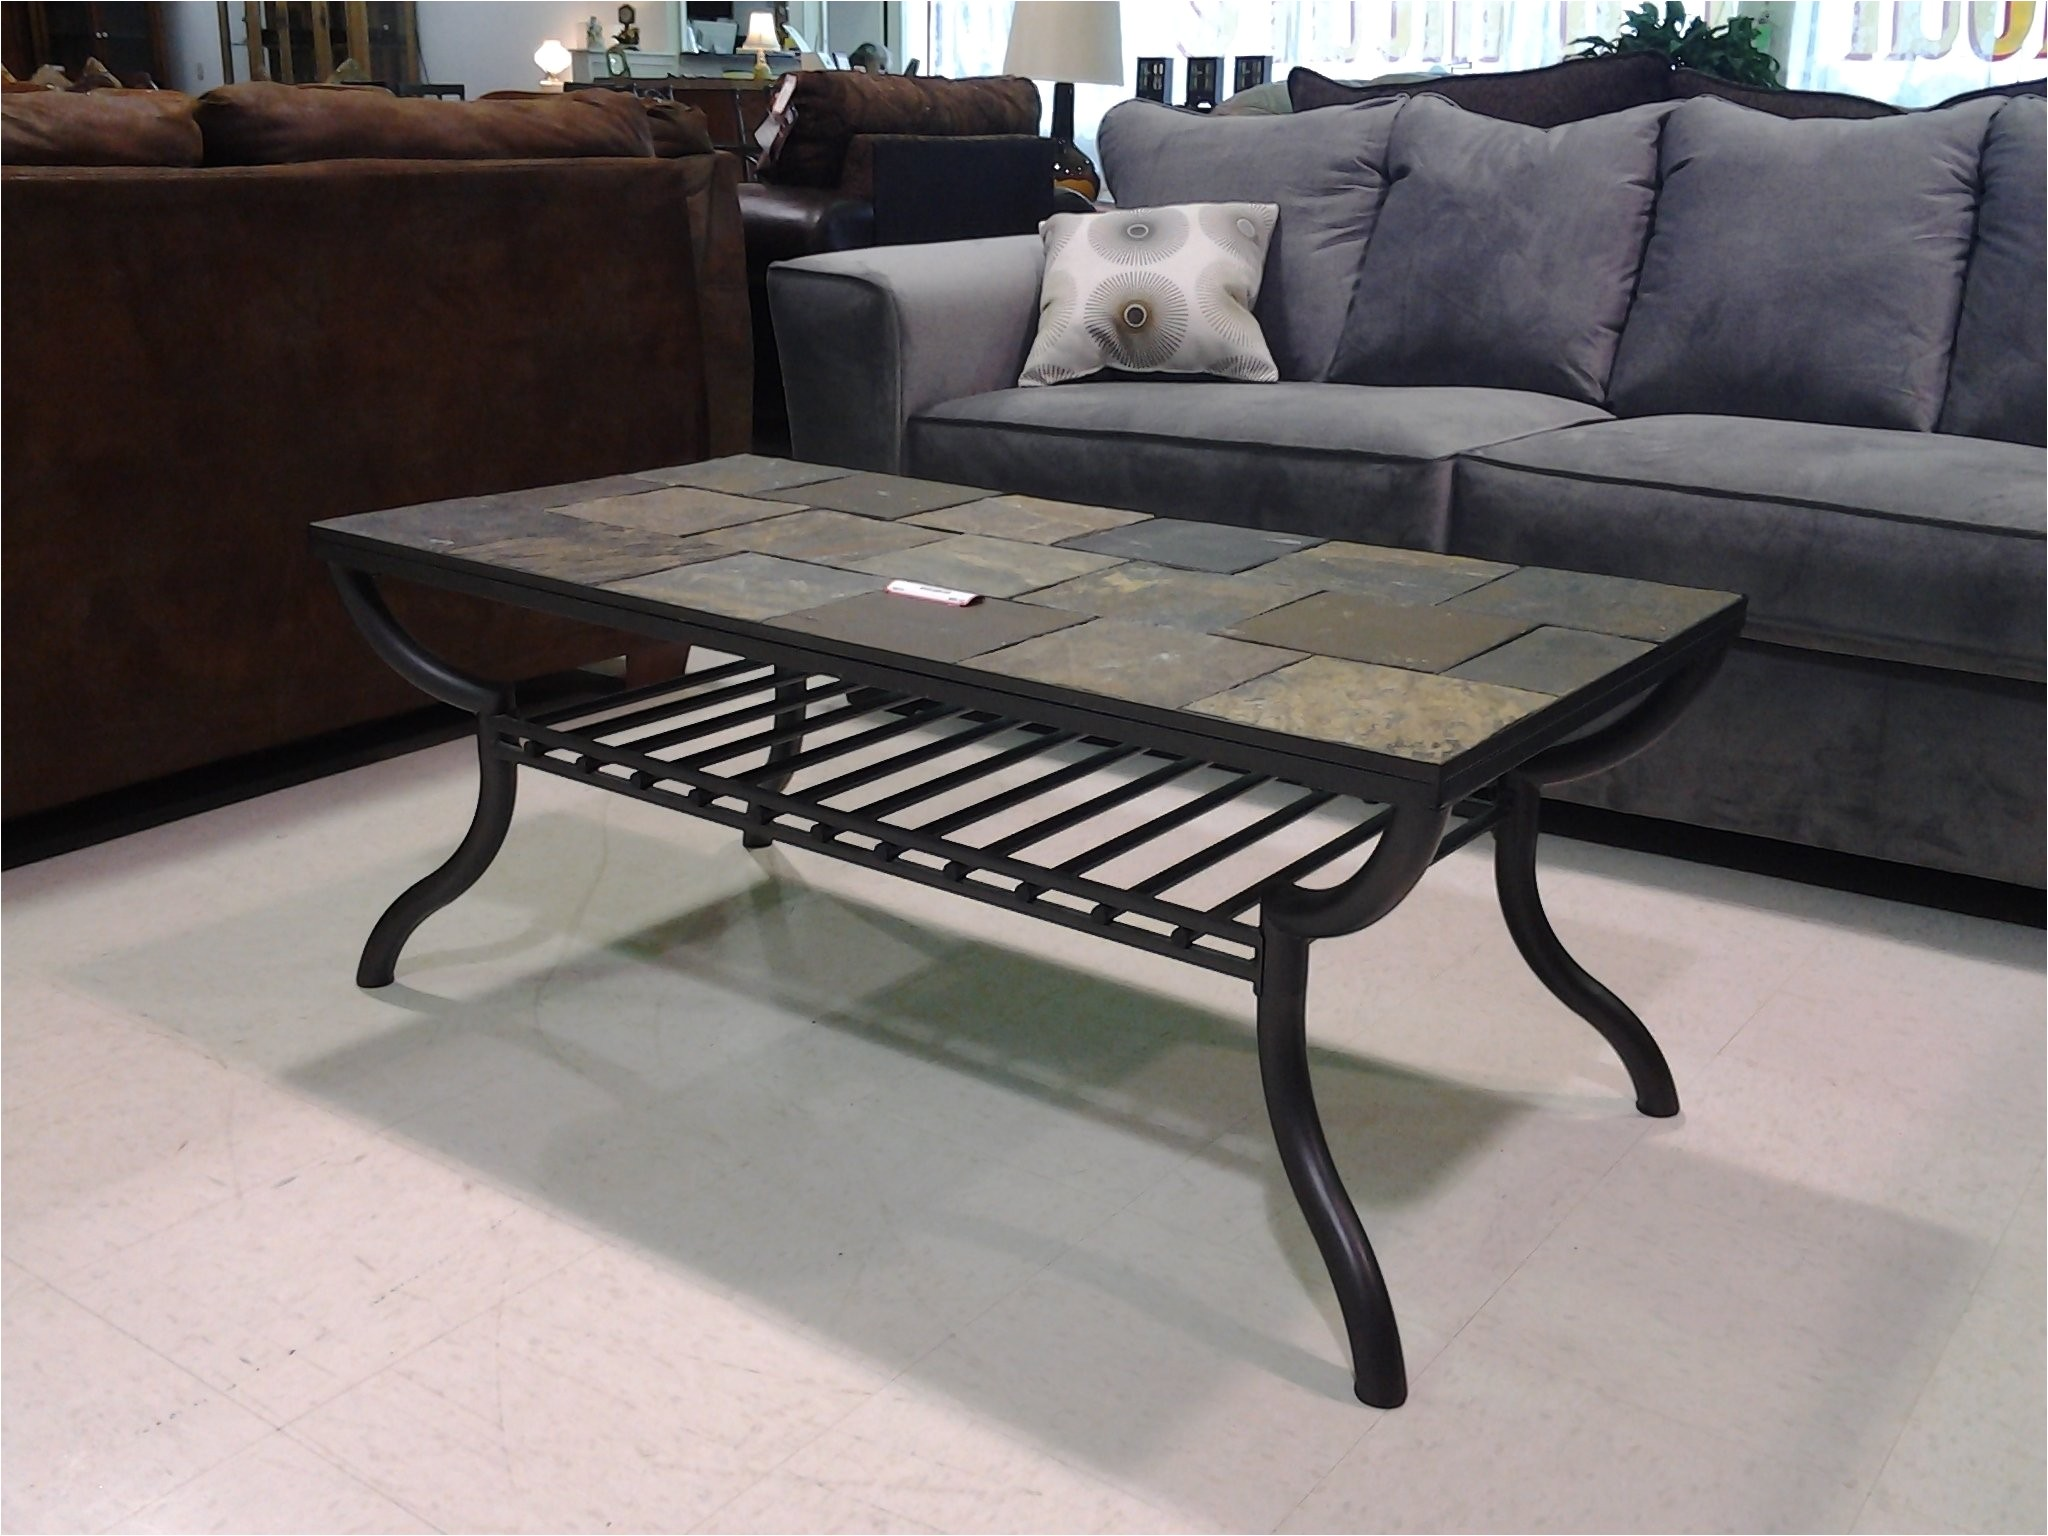 Big Lots Coffee Table and End Tables Exclusive Ideas Big Lots Coffee Tables the Wooden Houses